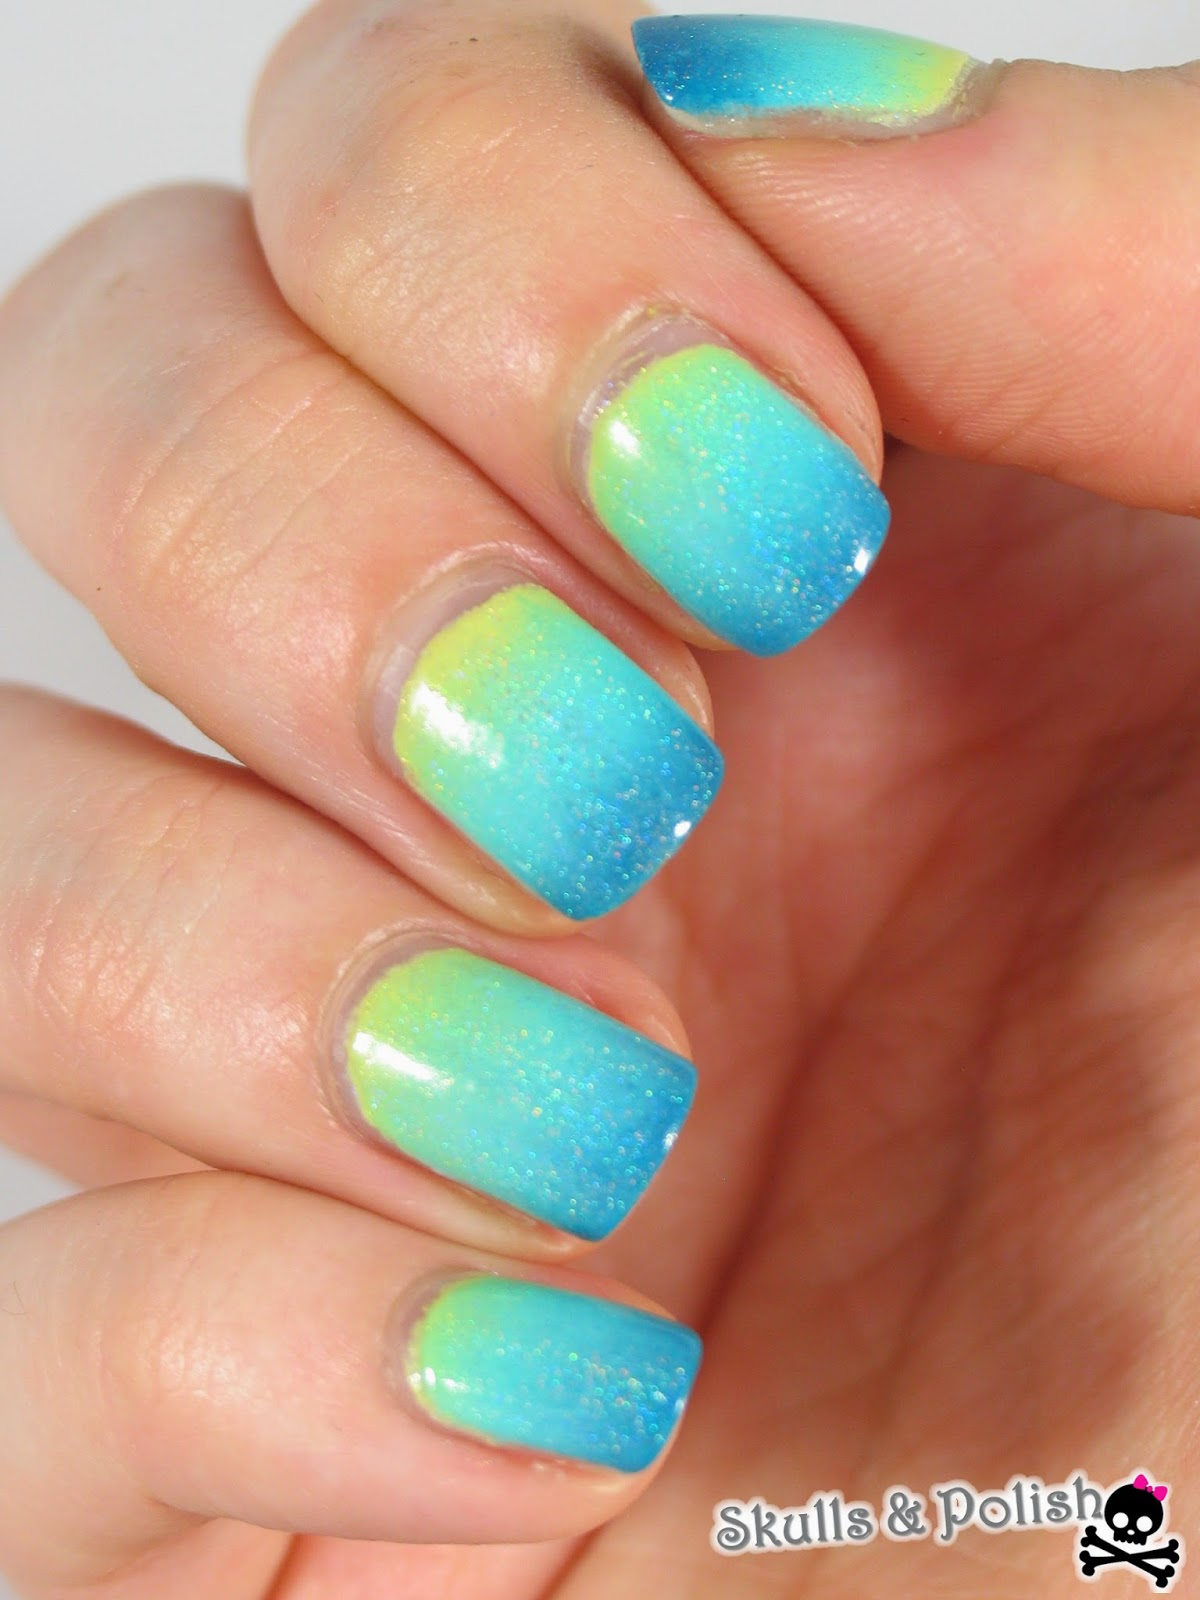 Kiko_mint_milk_essence_shopping_at_portobello_road_sinful_colors_jaune_pastel_djinn_in_a_bottle_enchanted_polish_gradient_nails